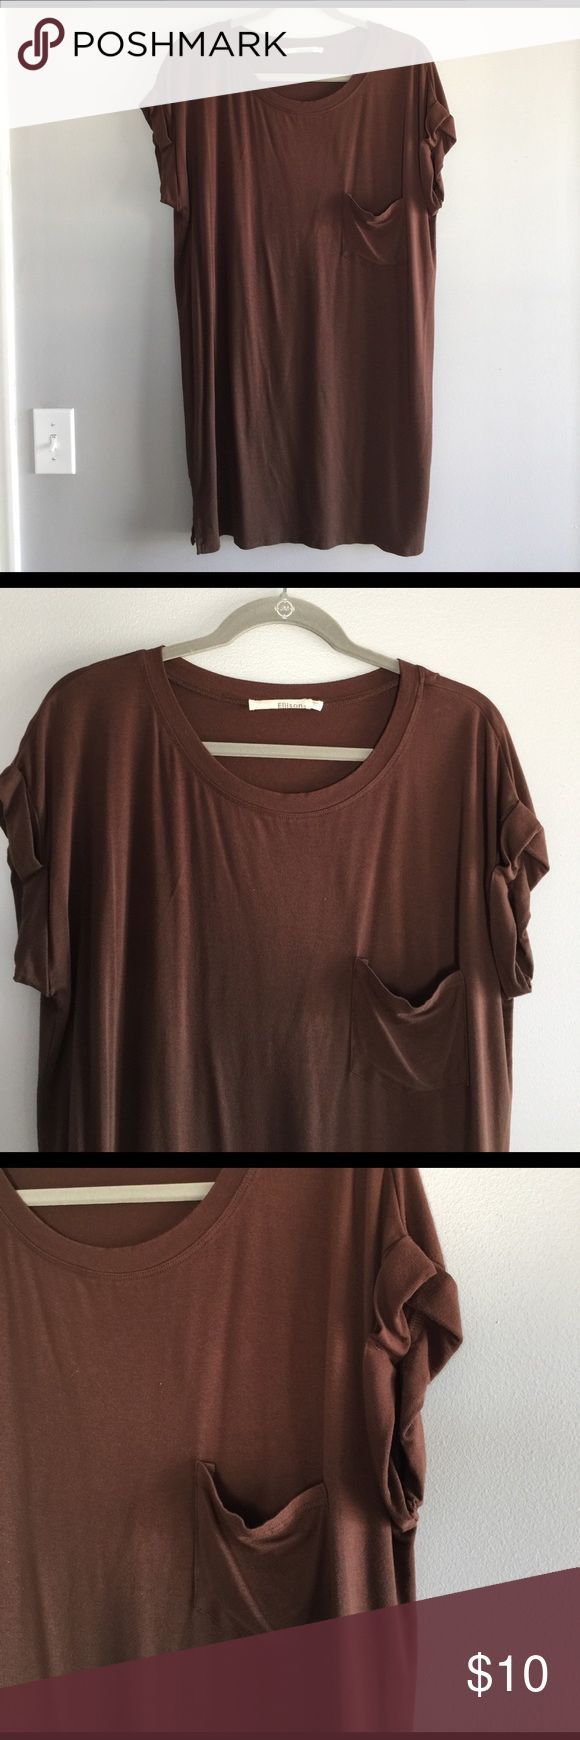 Ellison Long brown rolled sleeve t shirt This t shirt is long, comfortable and stylish. Brown color. Pocket. Rolled sleeves. Poly/rayon/spandex. Excellent condition. Worn once. Tops Tees - Short Sleeve